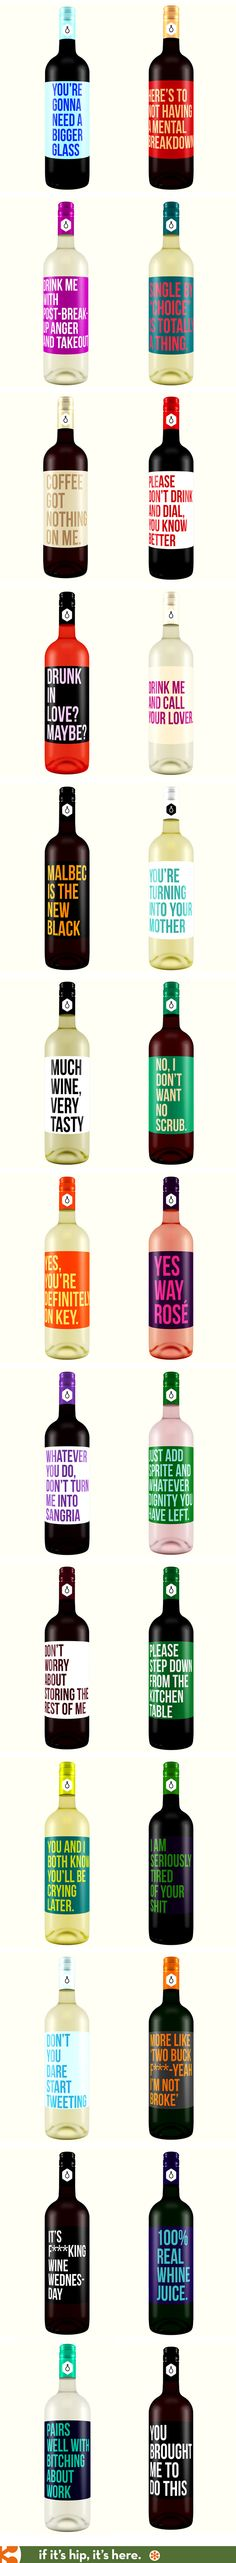 If Wine Labels Spoke The Truth. 26 Honest Wine Labels.